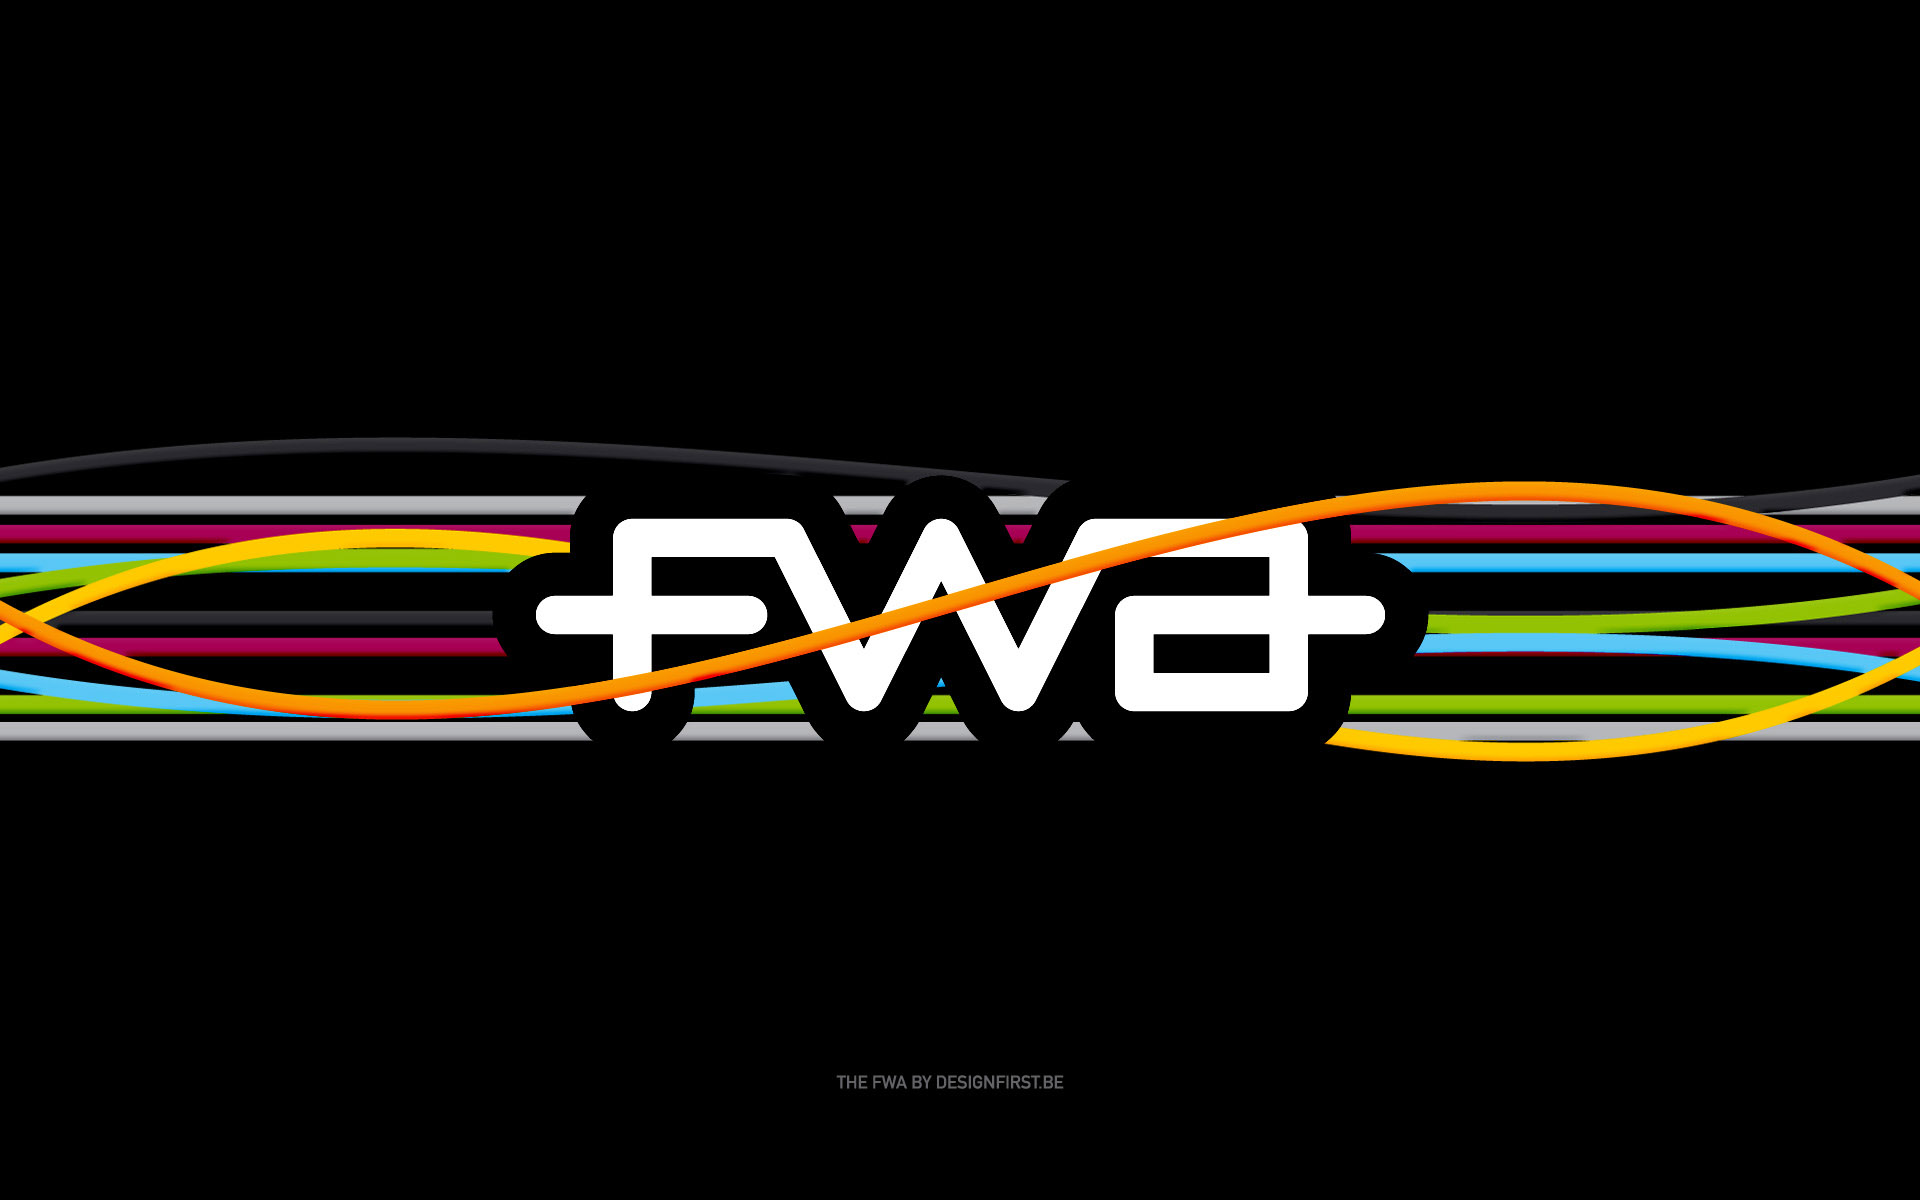 FWA wallpapers and images - wallpapers, pictures, photos